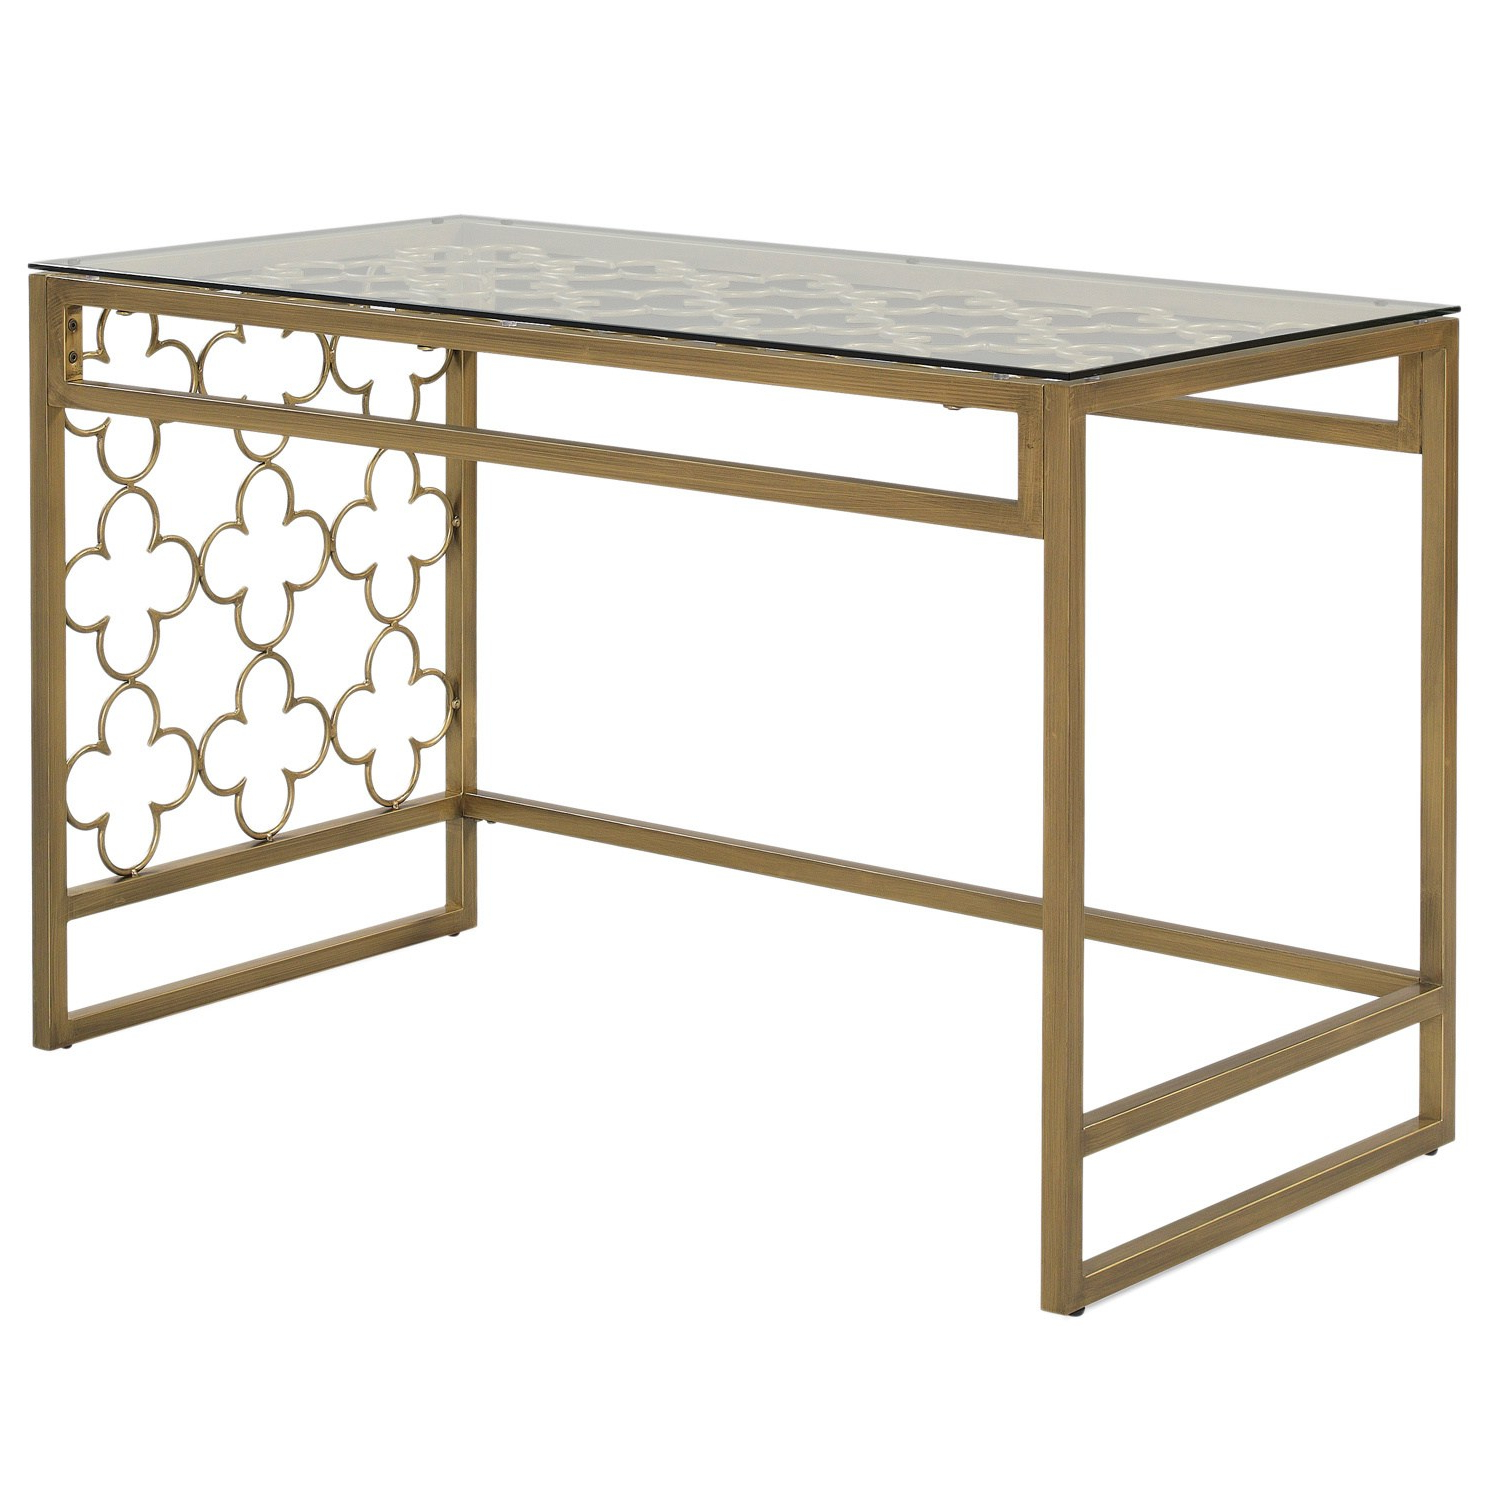 The Curated Nomad Quatrefoil Goldtone Metal And Glass Writing Desk Throughout Most Popular The Curated Nomad Quatrefoil Goldtone Metal And Glass Coffee Tables (View 15 of 20)